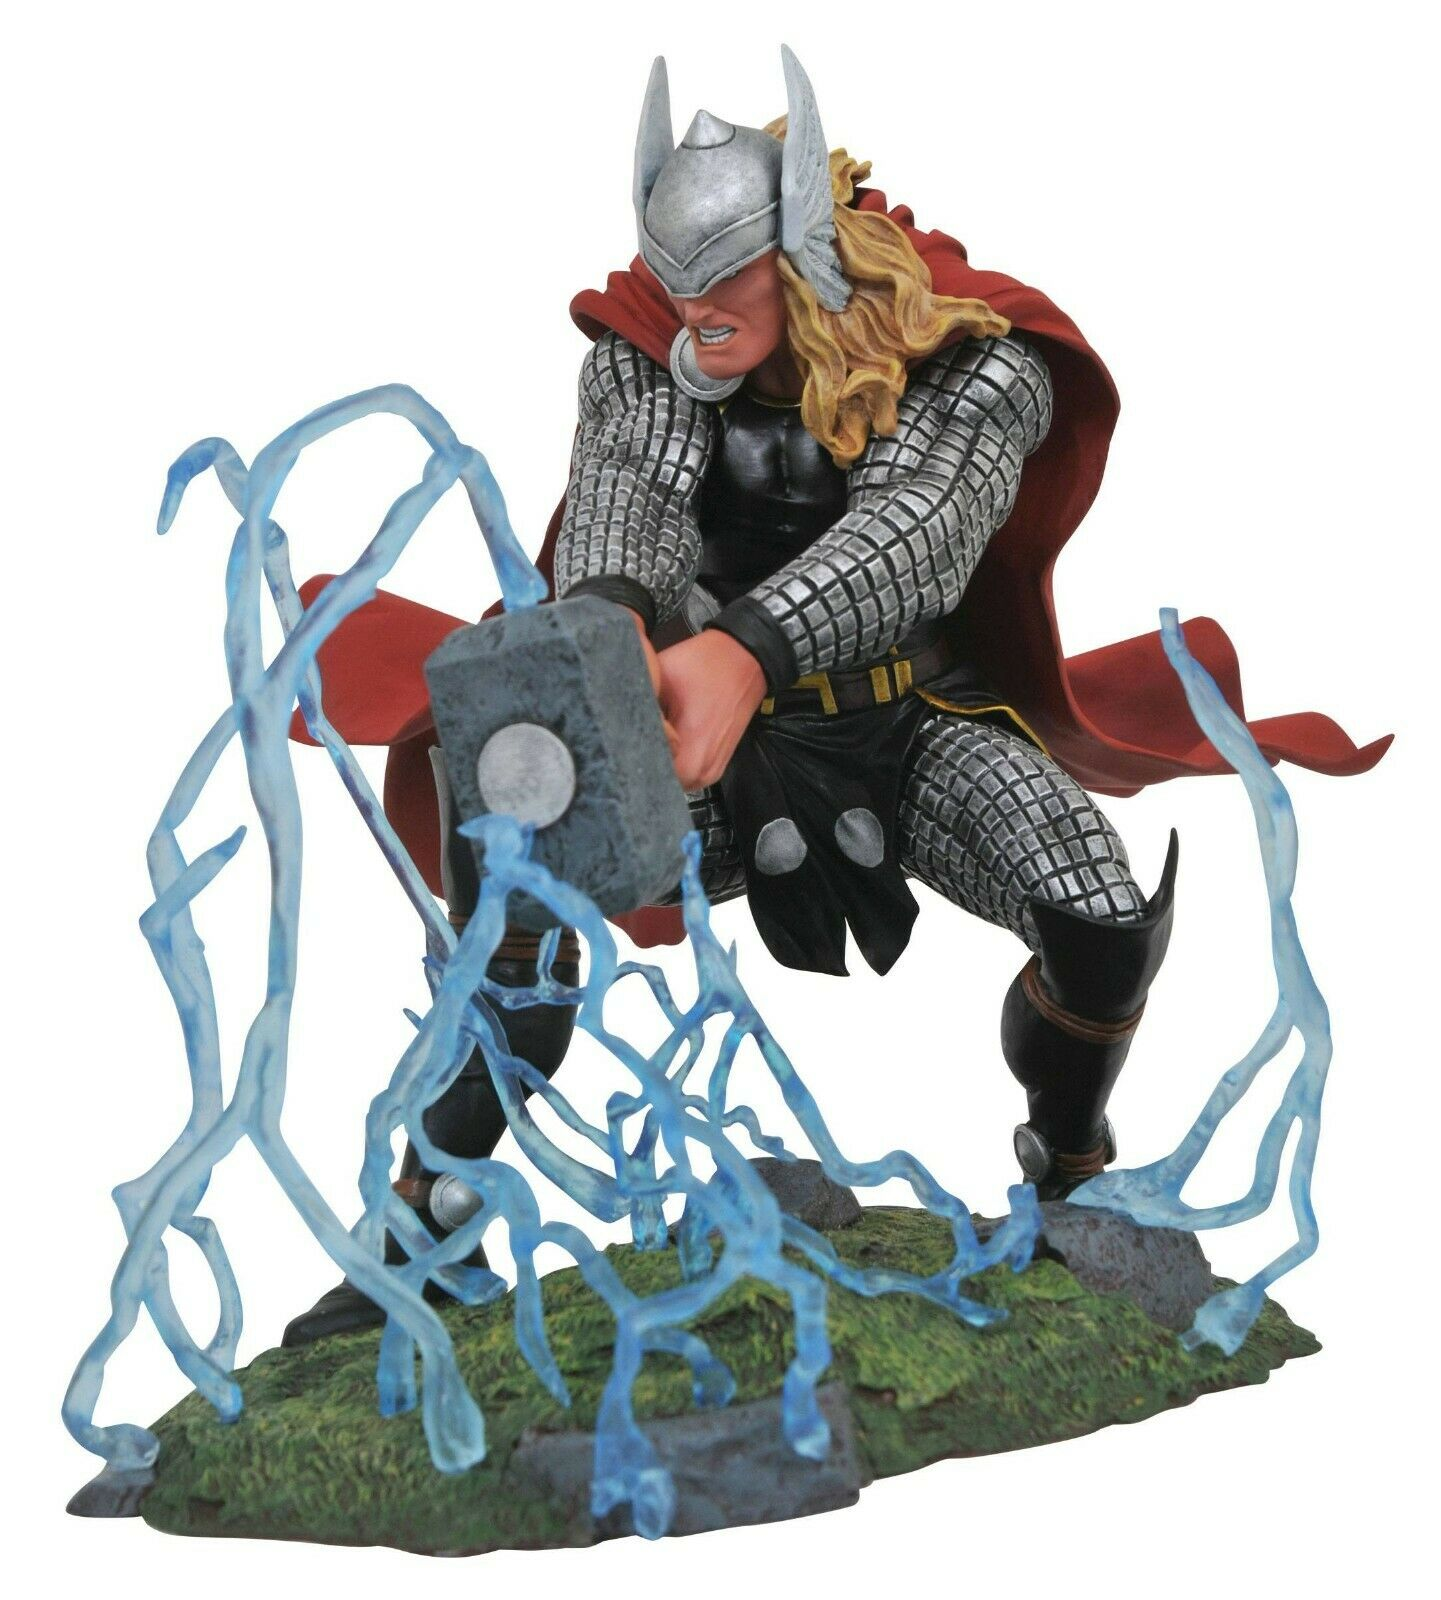 THOR STATUETTE MARVEL COMIC GALLERY DIAMOND SELECT 20 CM